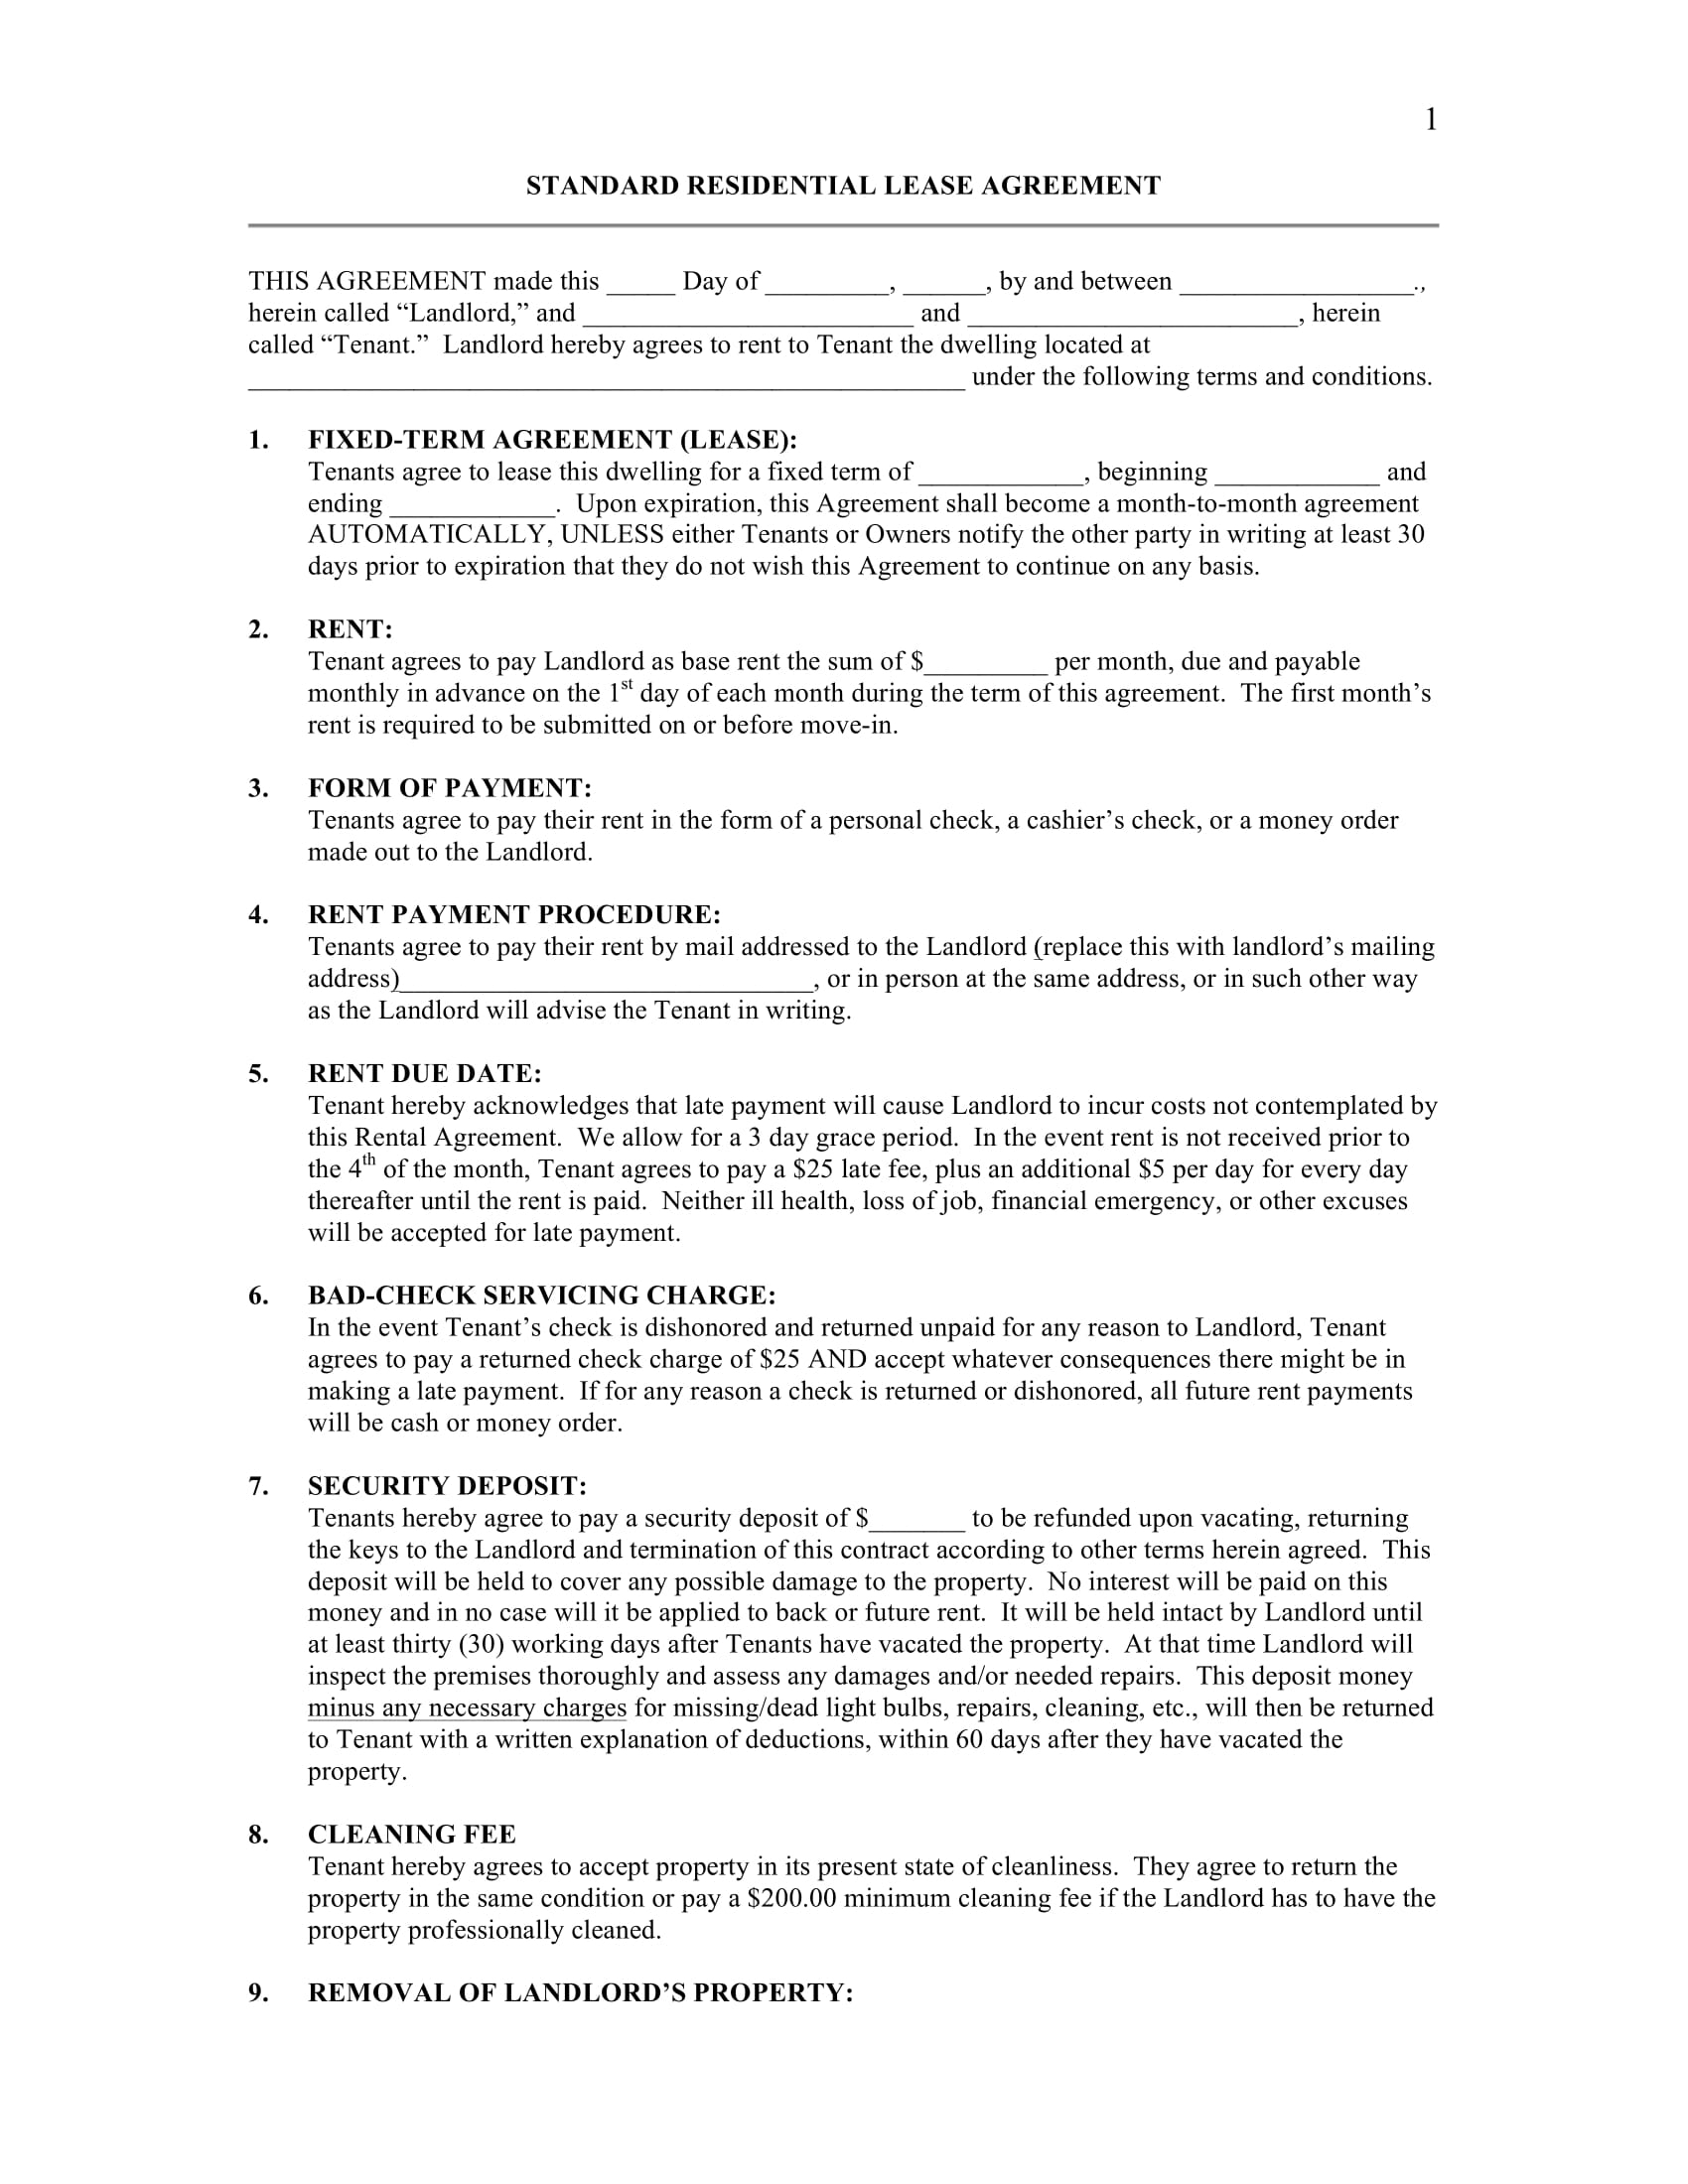 standard residential lease agreement contract form 1